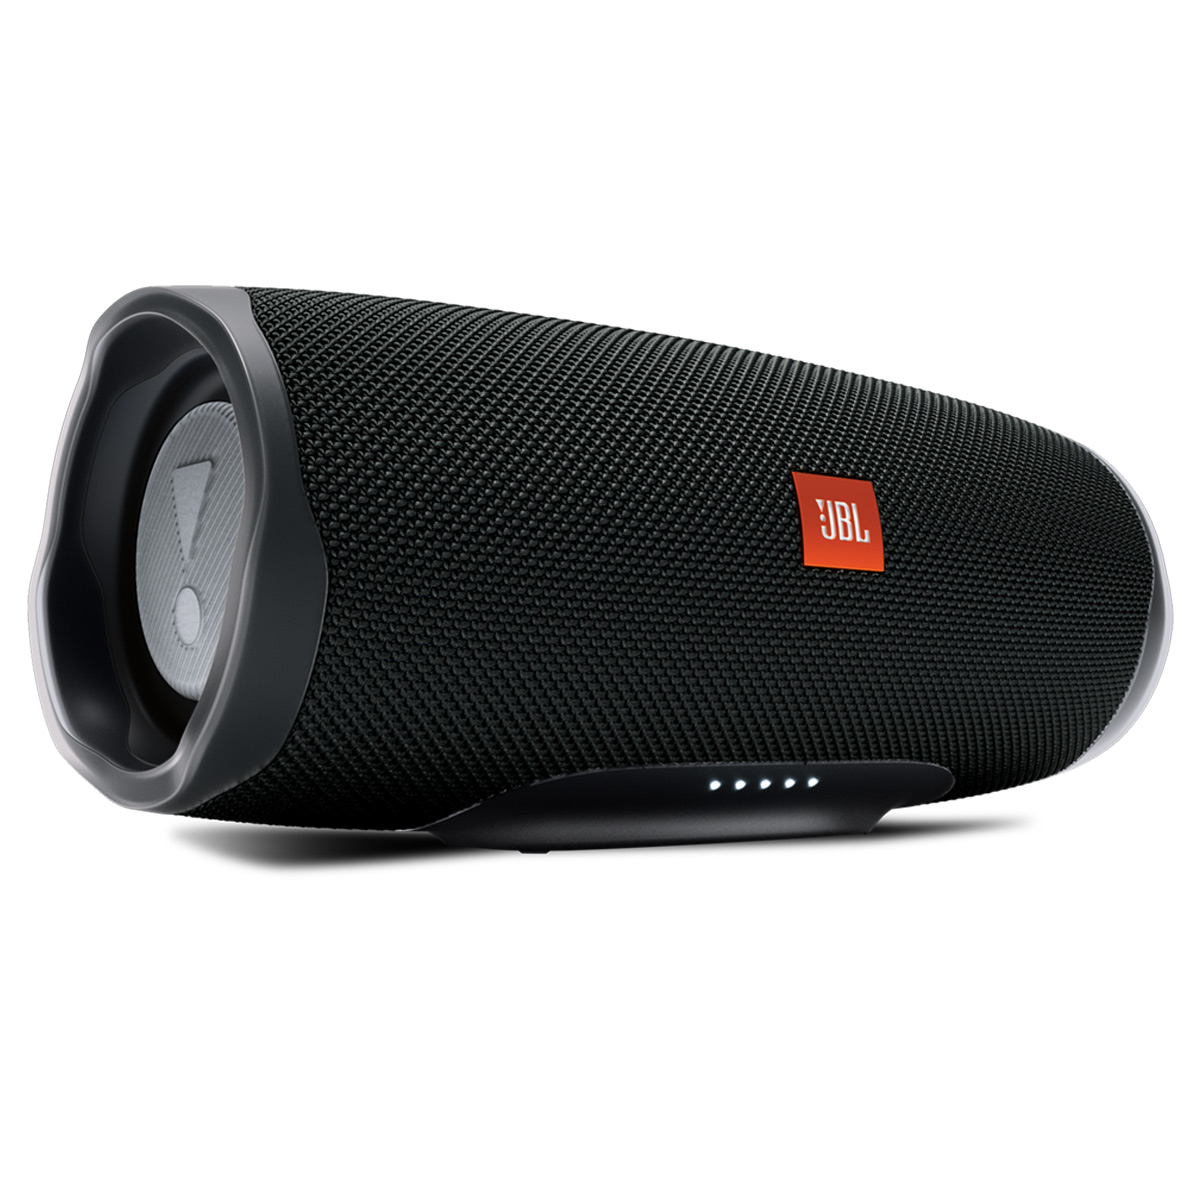 JBL Charge 4 Portable Waterproof Wireless Bluetooth Speaker (Black)